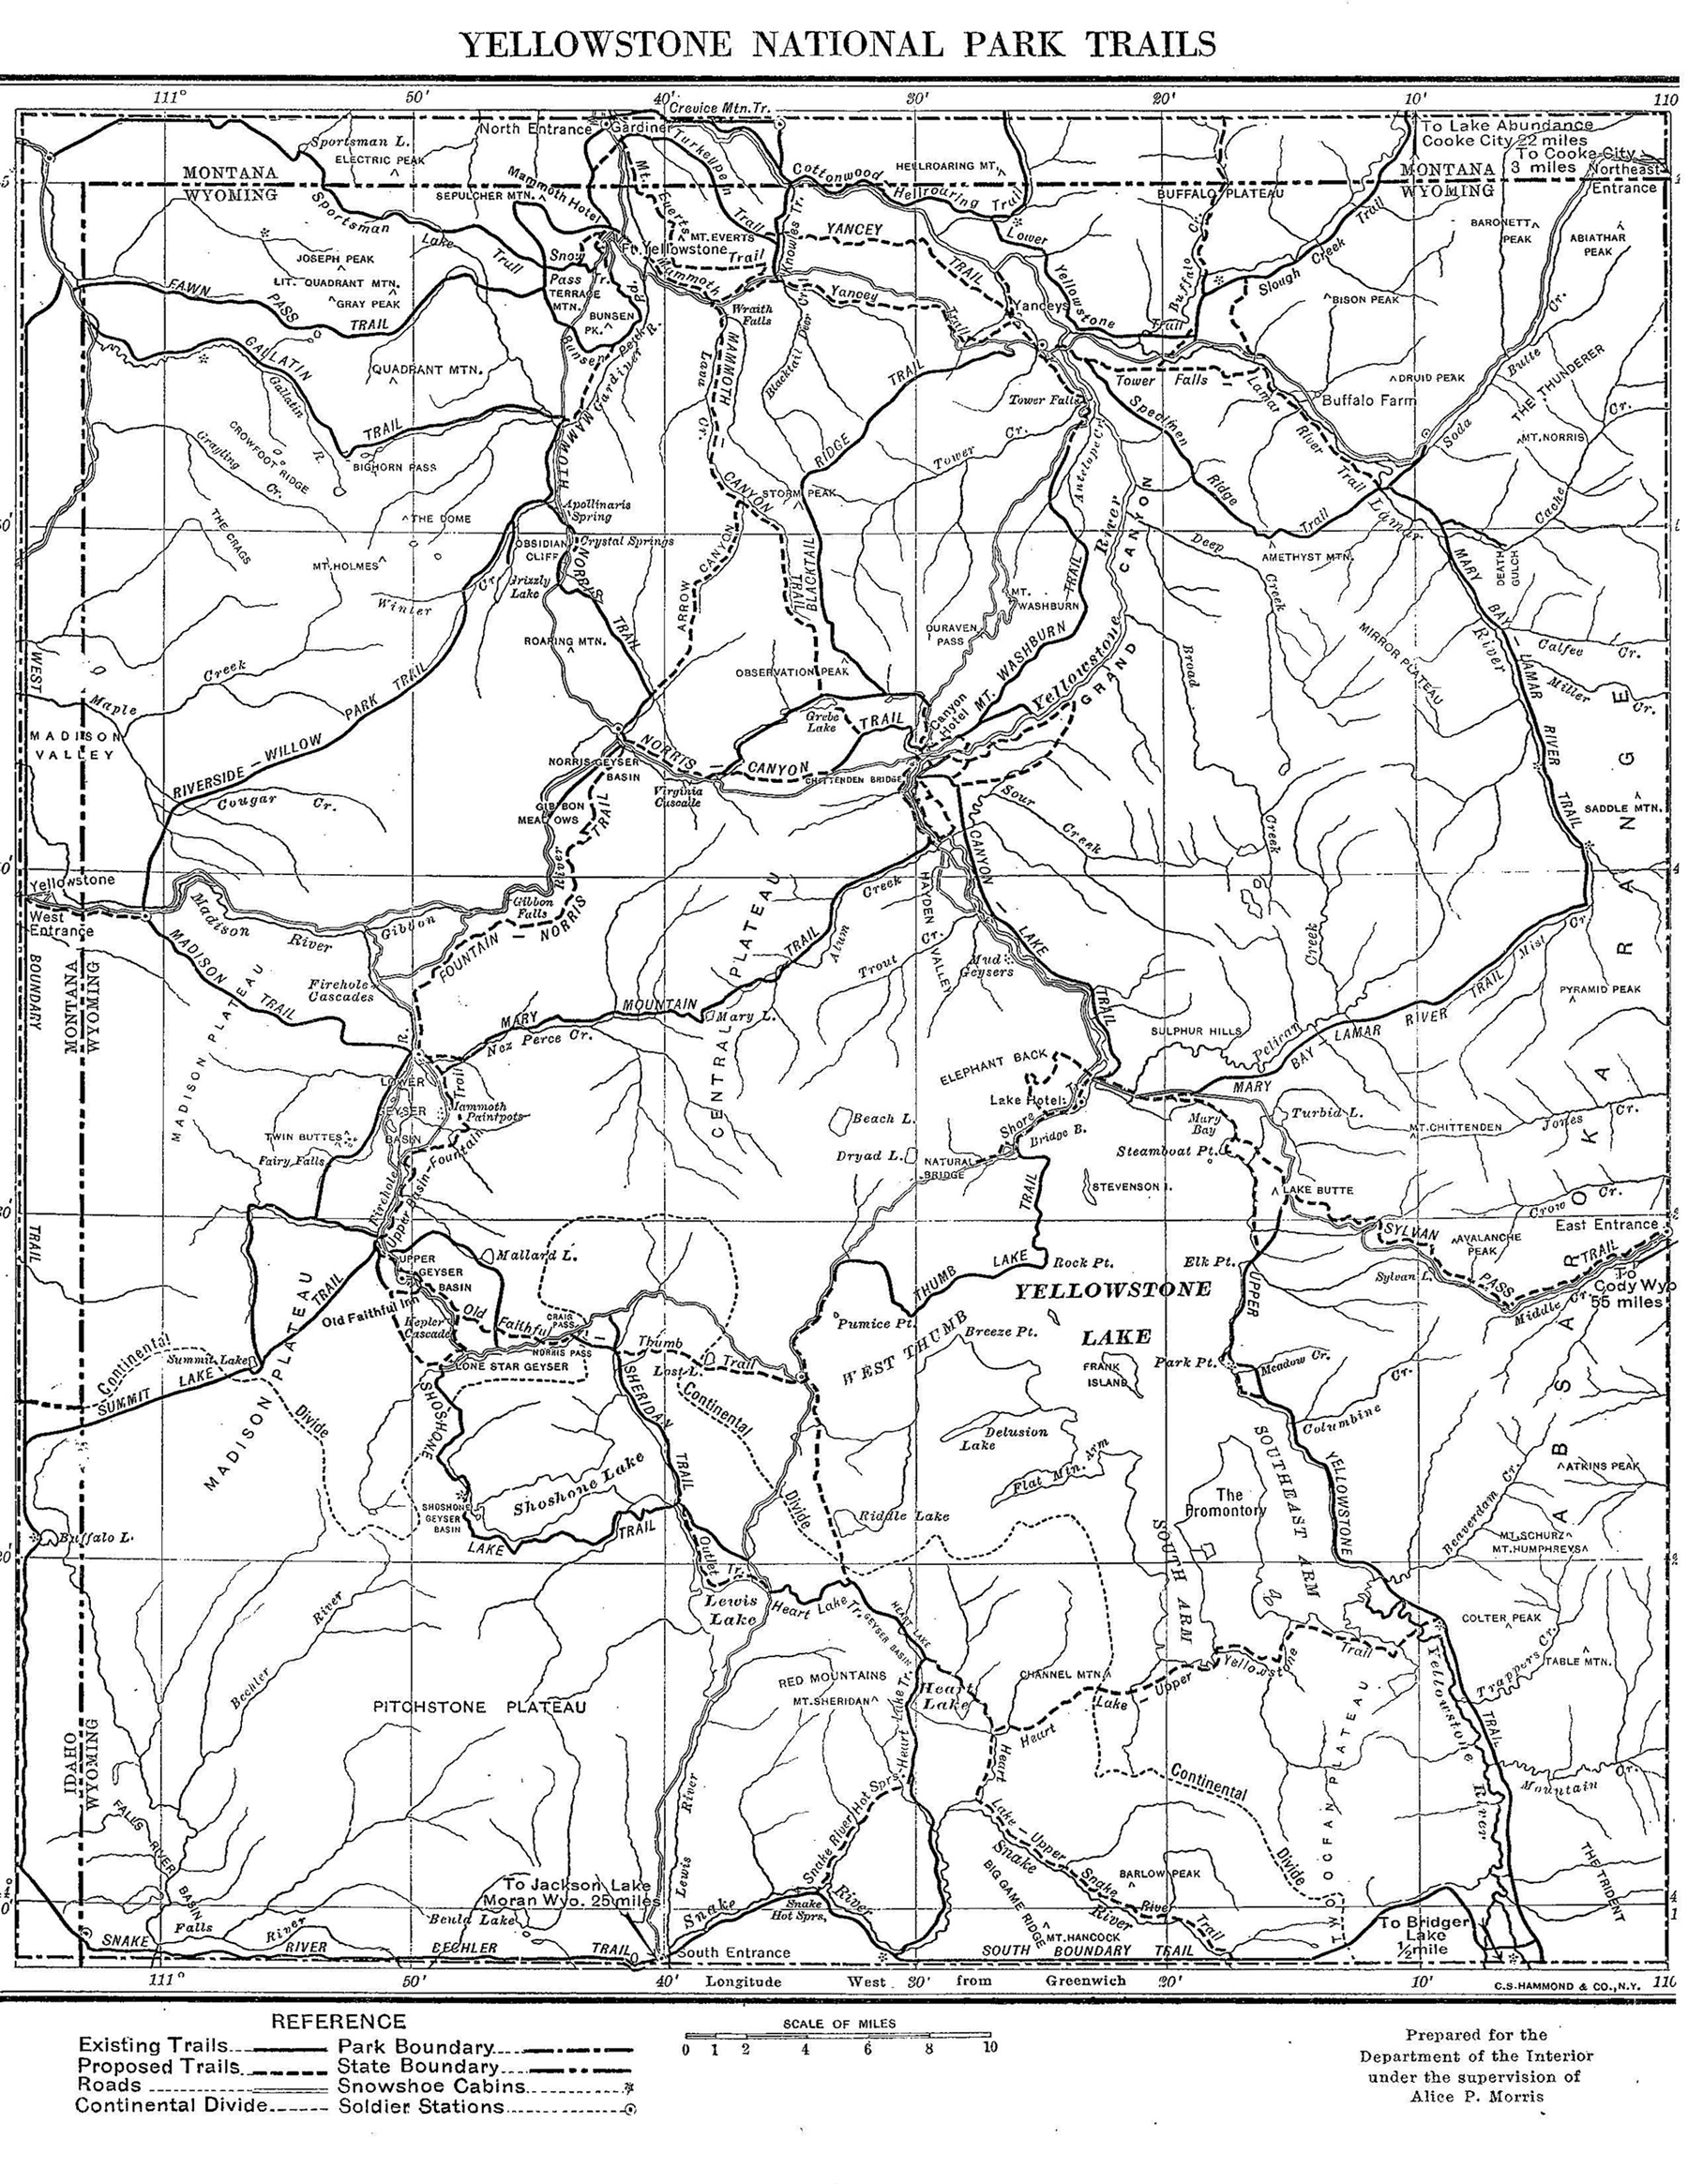 Yellowstone Maps   NPMaps     just free maps  period moreover File Map Yellowstone National Park     Wikimedia  mons also Water Chemistry Data for Selected Springs  Geysers  and Streams in further Map of Yellowstone National Park  Wyoming in addition Yellowstone National Park Map likewise Map   Yellowstone Tours in addition Yellowstone National Park Map   Go Northwest  A Travel Guide as well  besides Yellowstone Map   Yellowstone Bus Tours and Vacation Packages besides Flight of the Nez Perce   Yellowstone National Park  U S  National in addition Yellowstone Maps  Buffalo Field C aign moreover Alice Morris  Mapping Yellowstone's Trails   WyoHistory org together with  further Yellowstone National Park Map – Yellowstone Treasures furthermore Amazon     Yellowstone National Park South WY topo map  1 100000 further Old State Map   Yellowstone National Park 1895. on yellowstone national park wyoming map